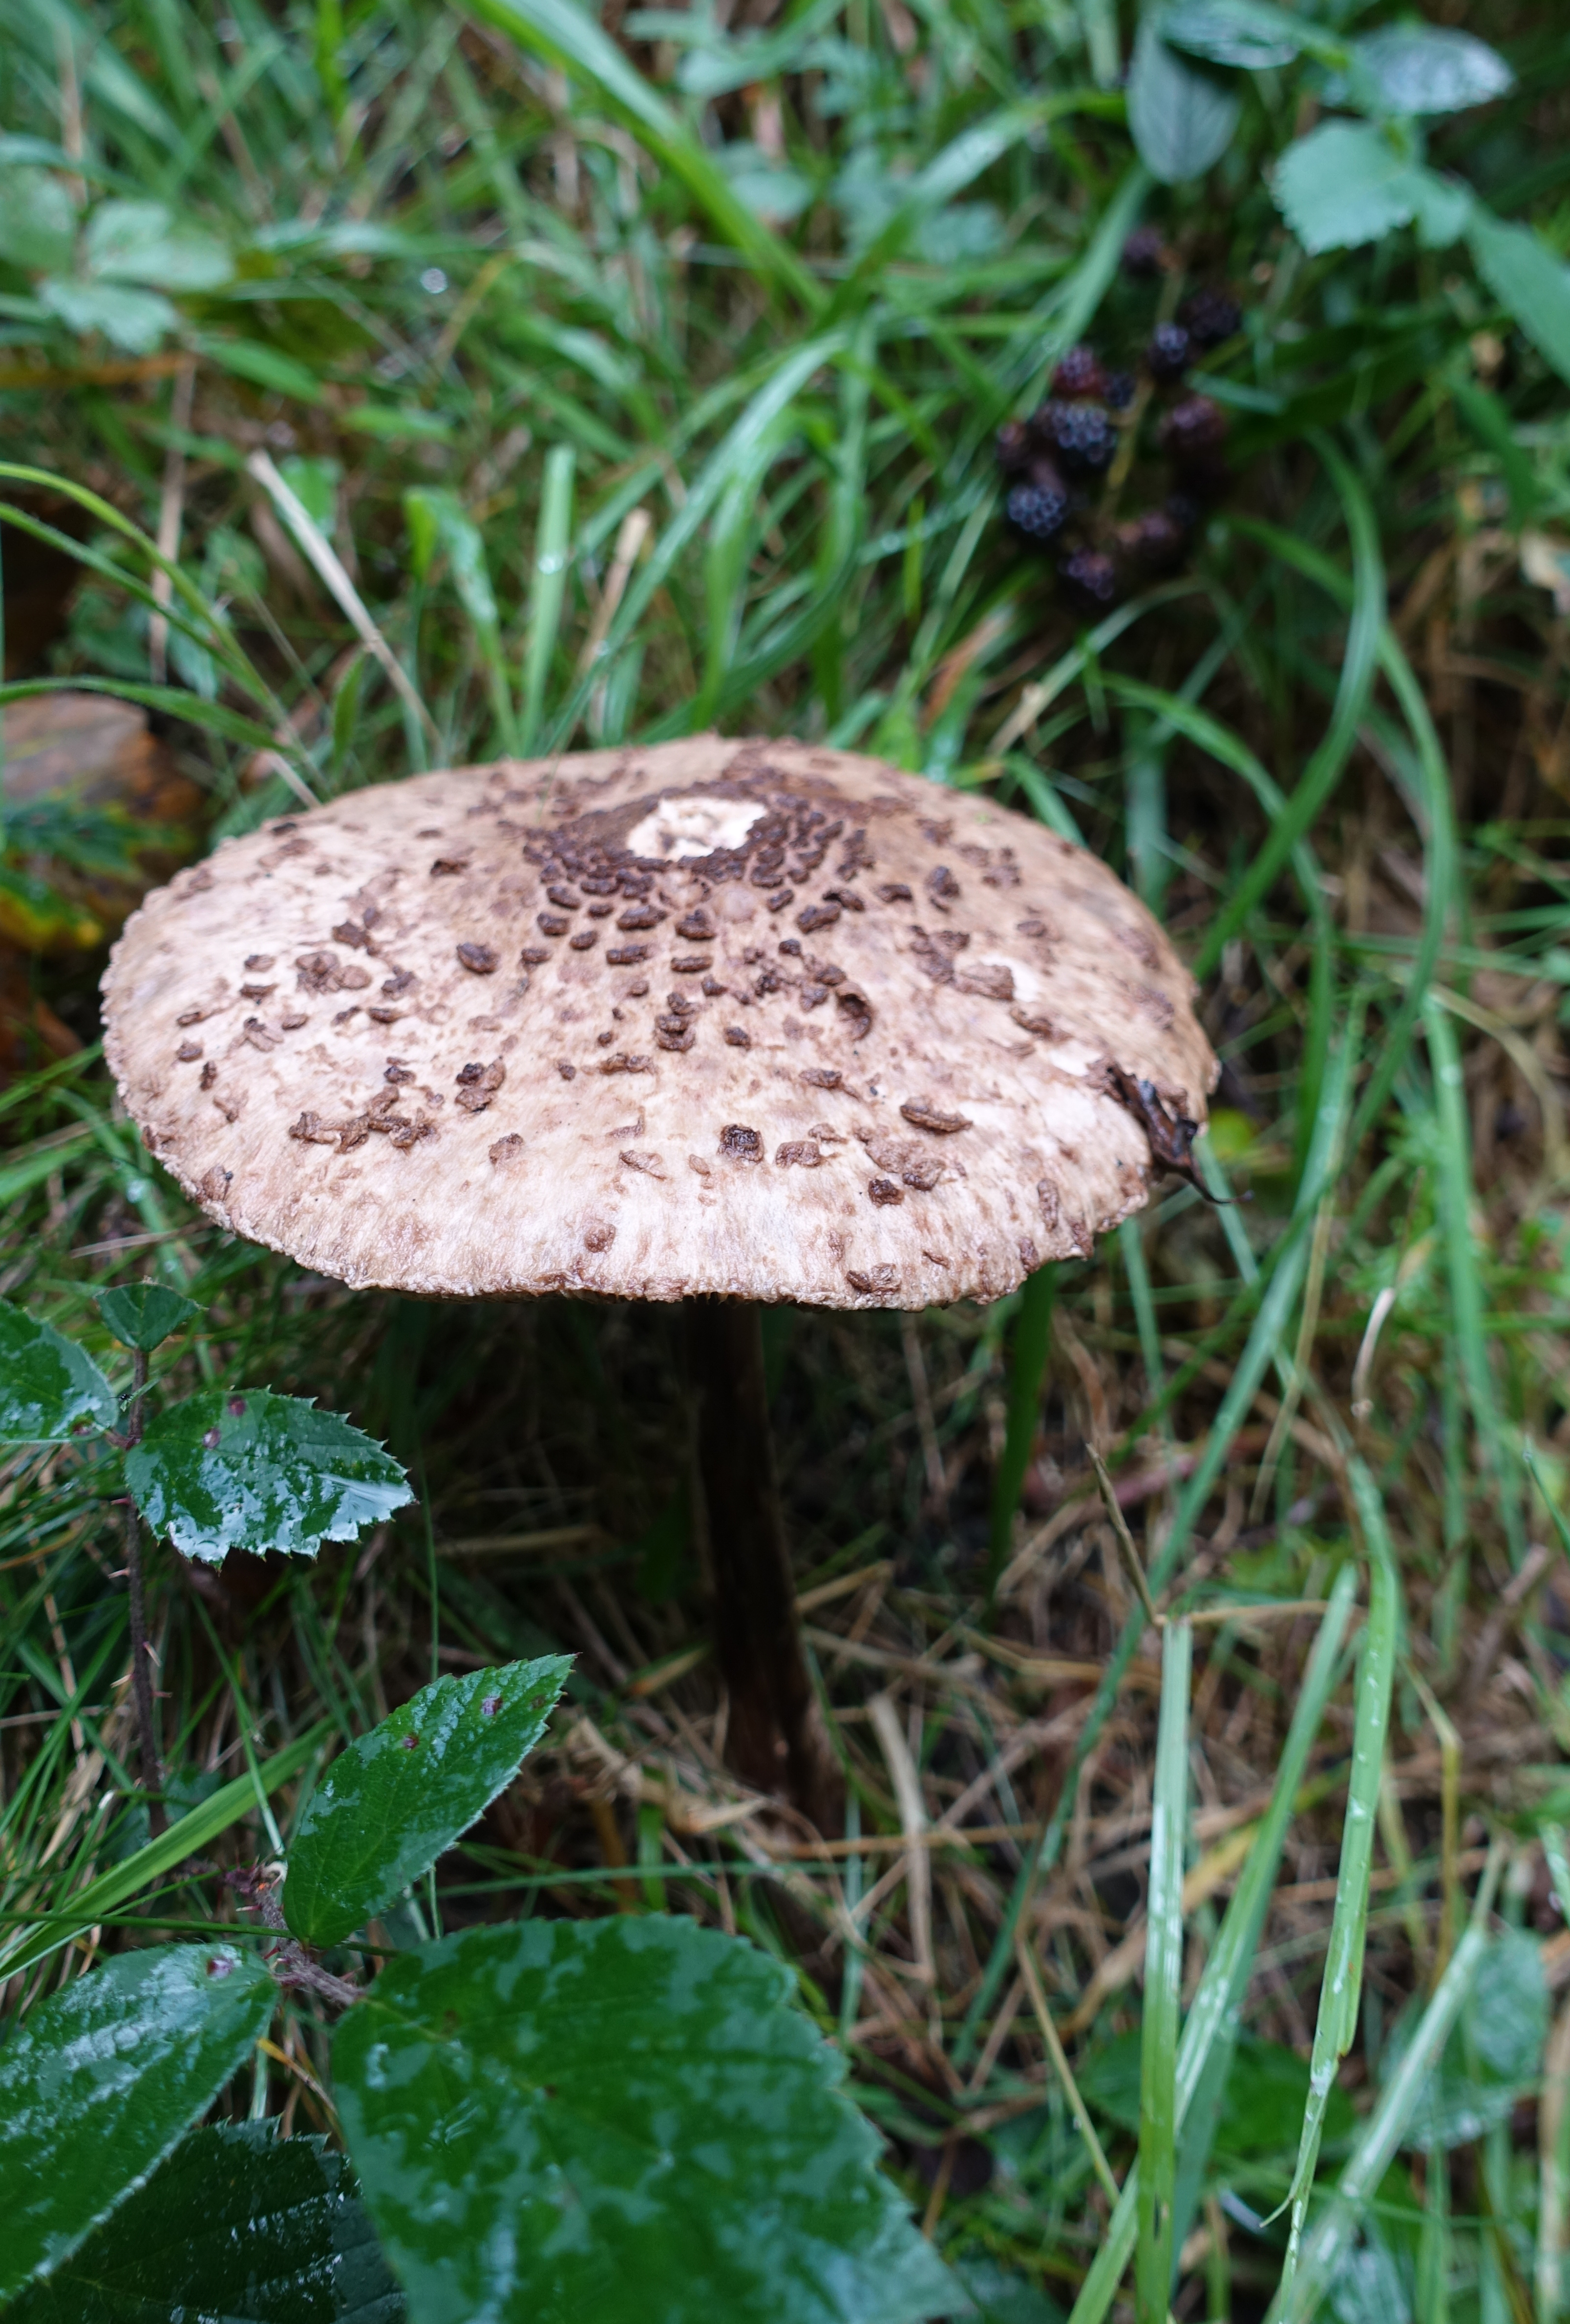 This was an autumn walk and fungi were much in evidence